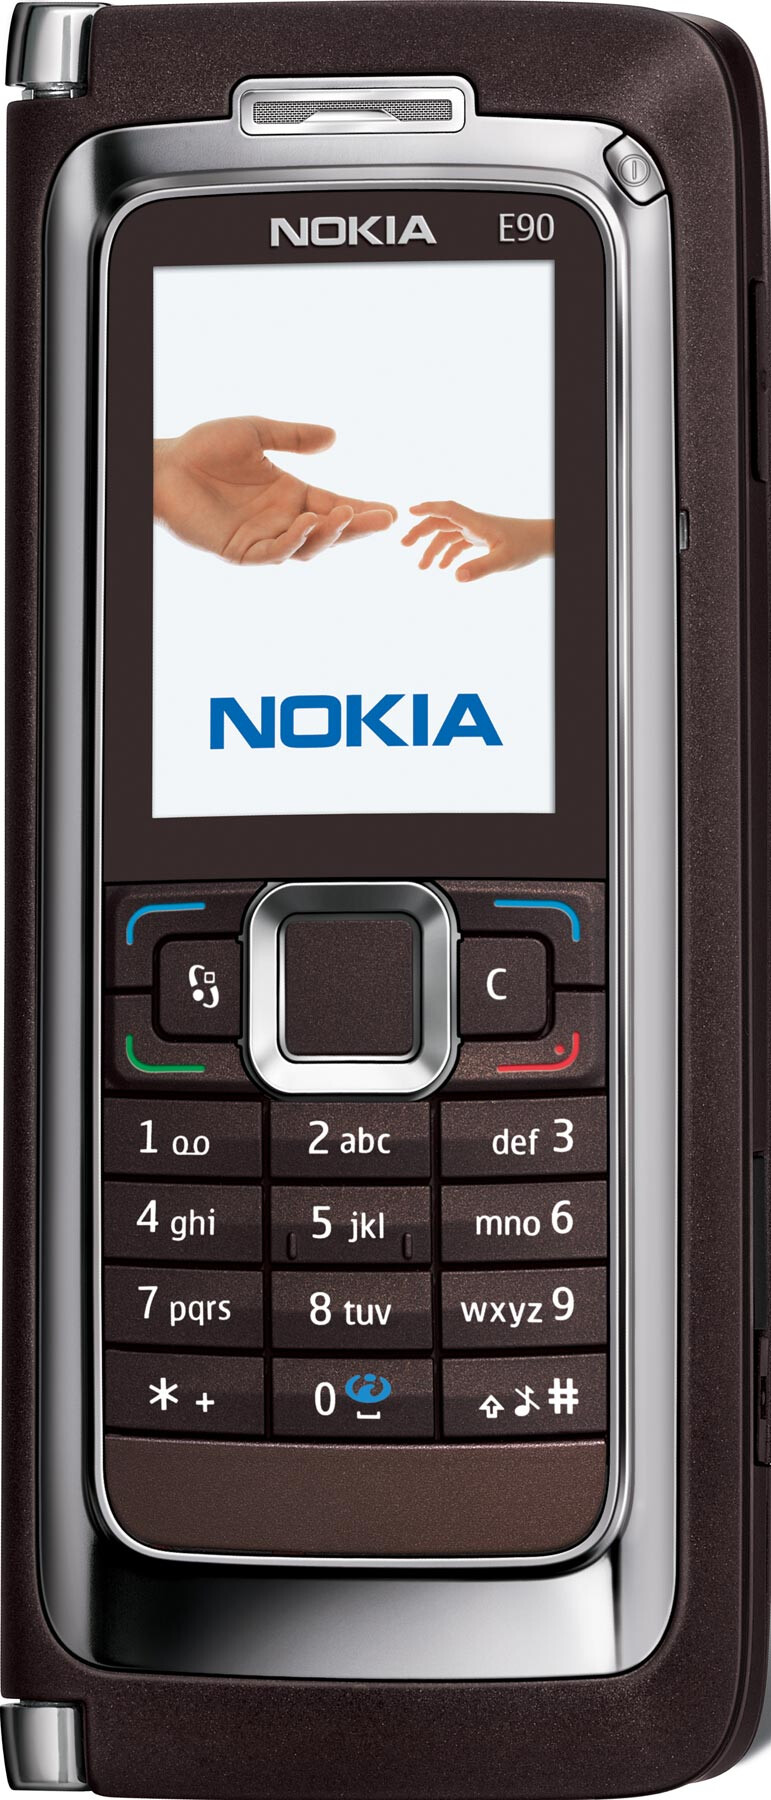 Nokia E90 Communicator